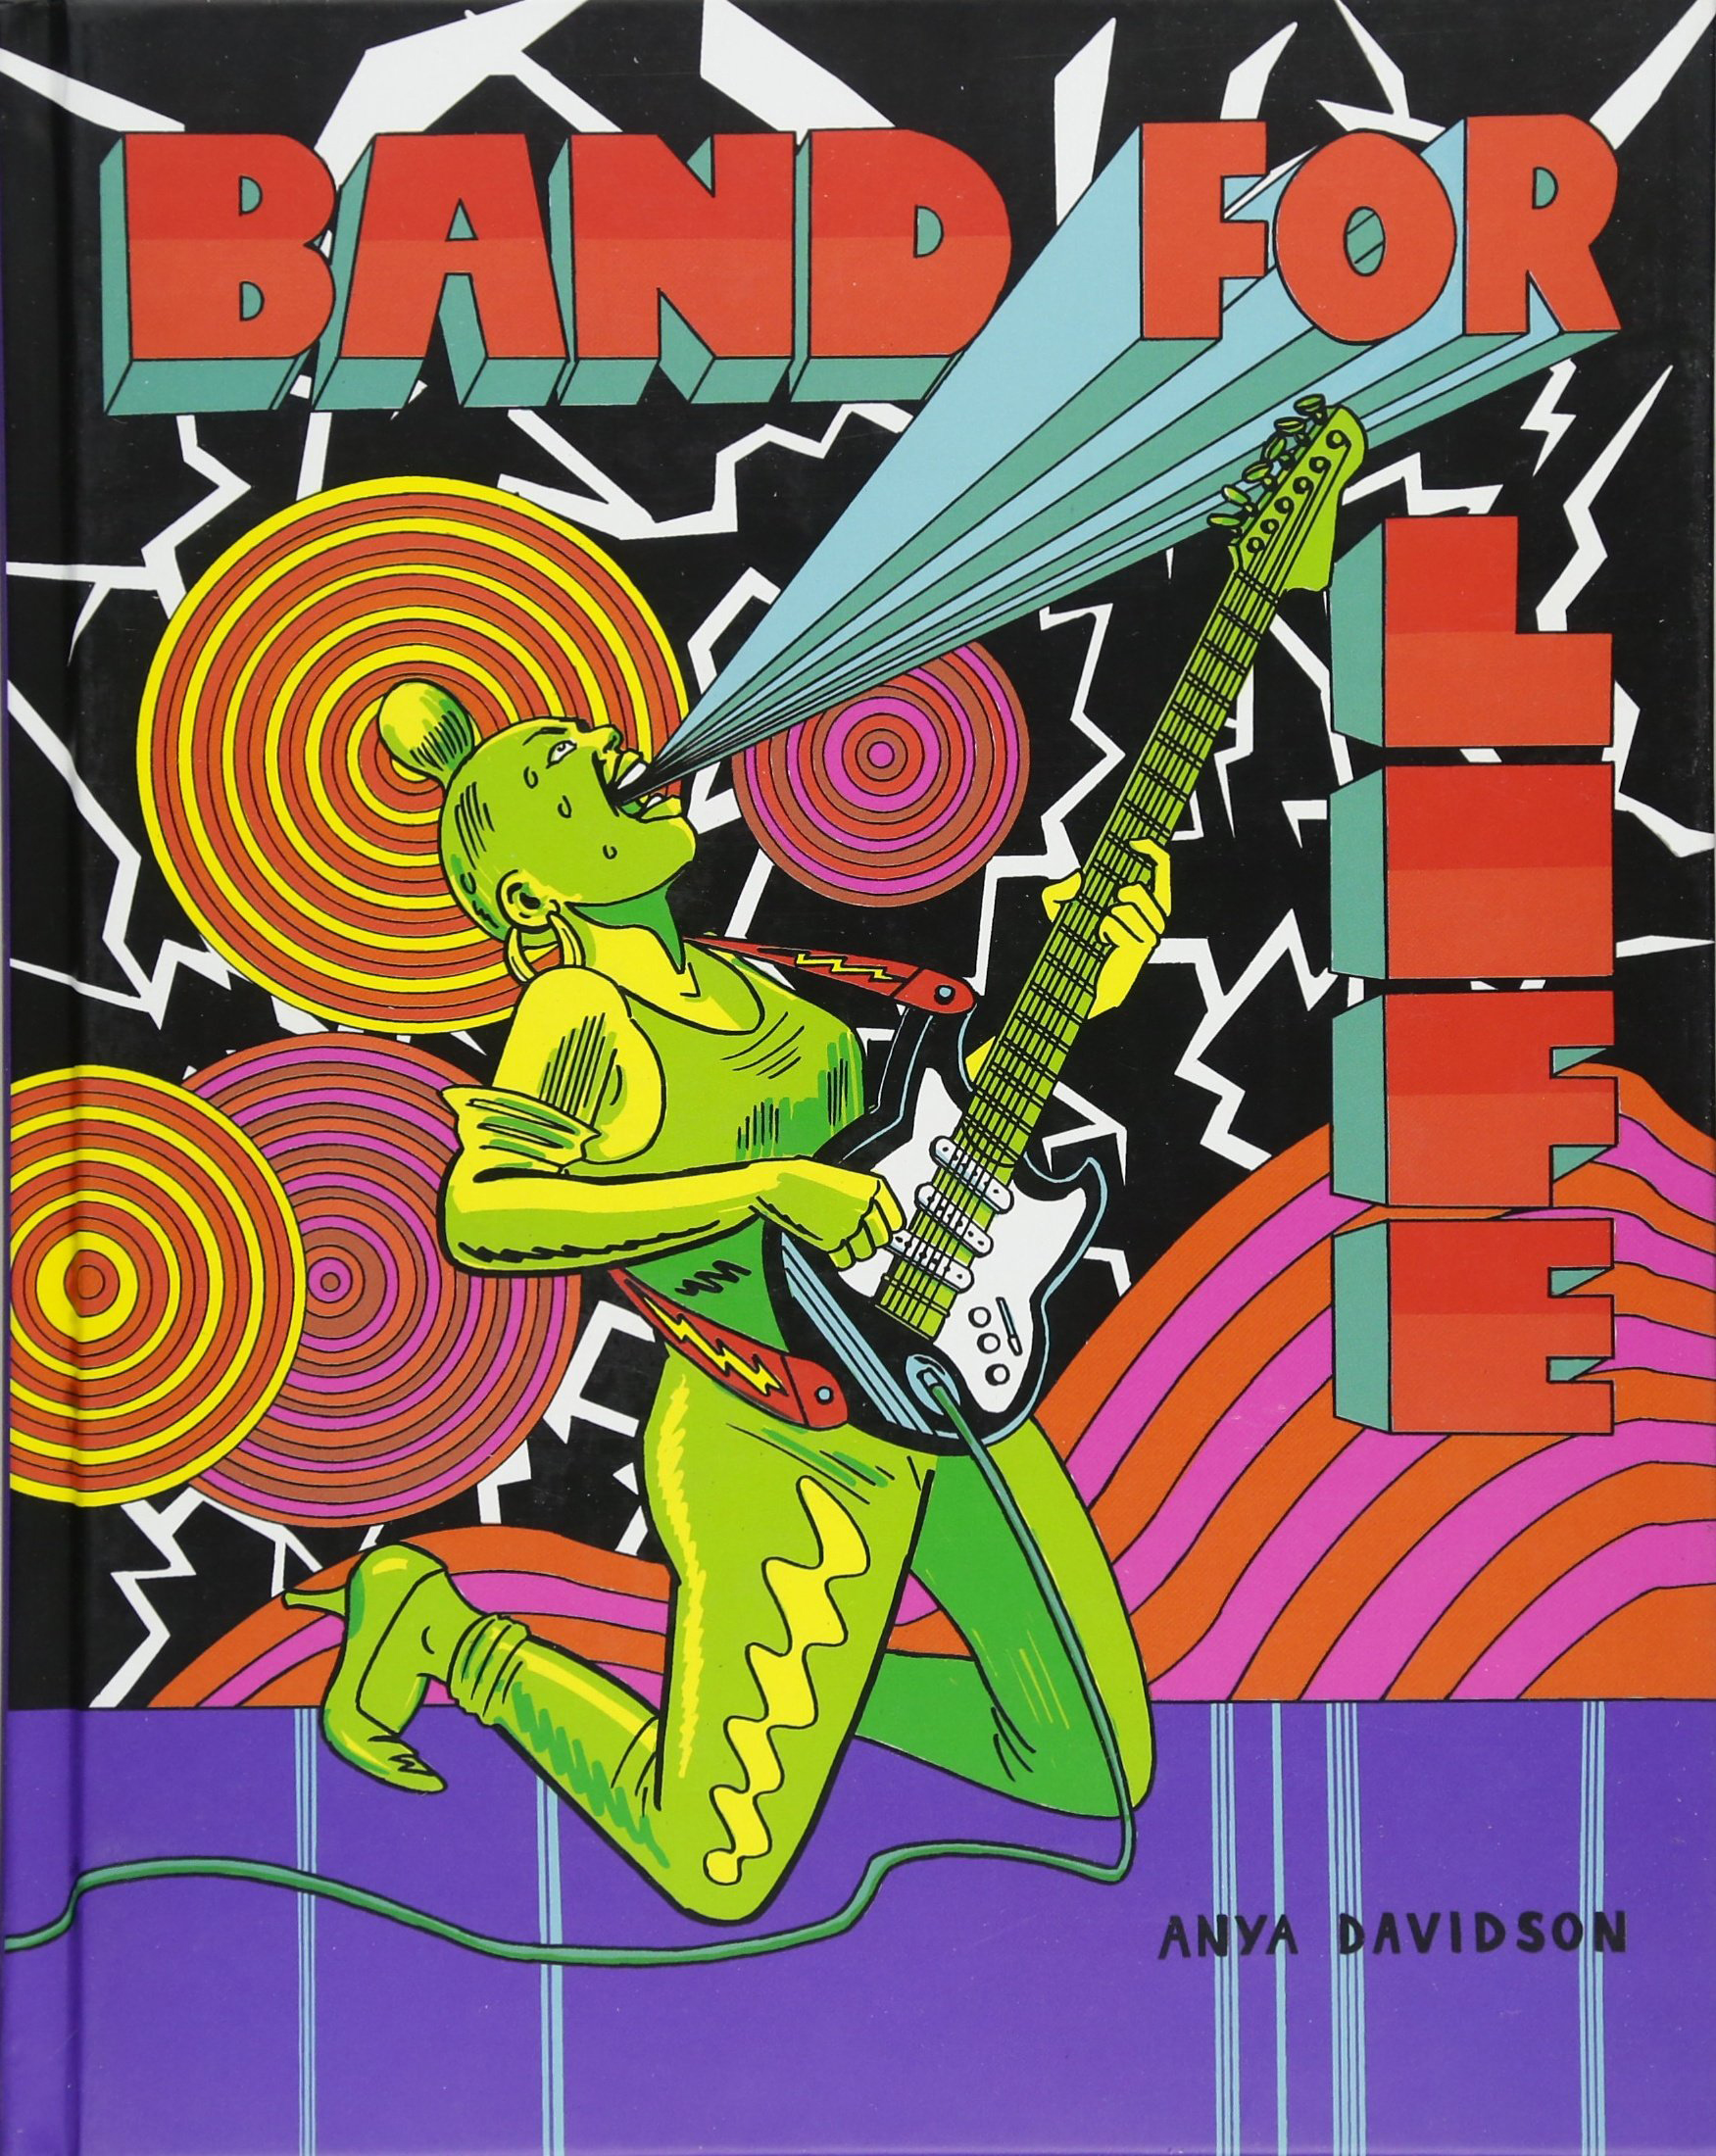 BOOK REVIEW: Band for Life By Anya Davidson